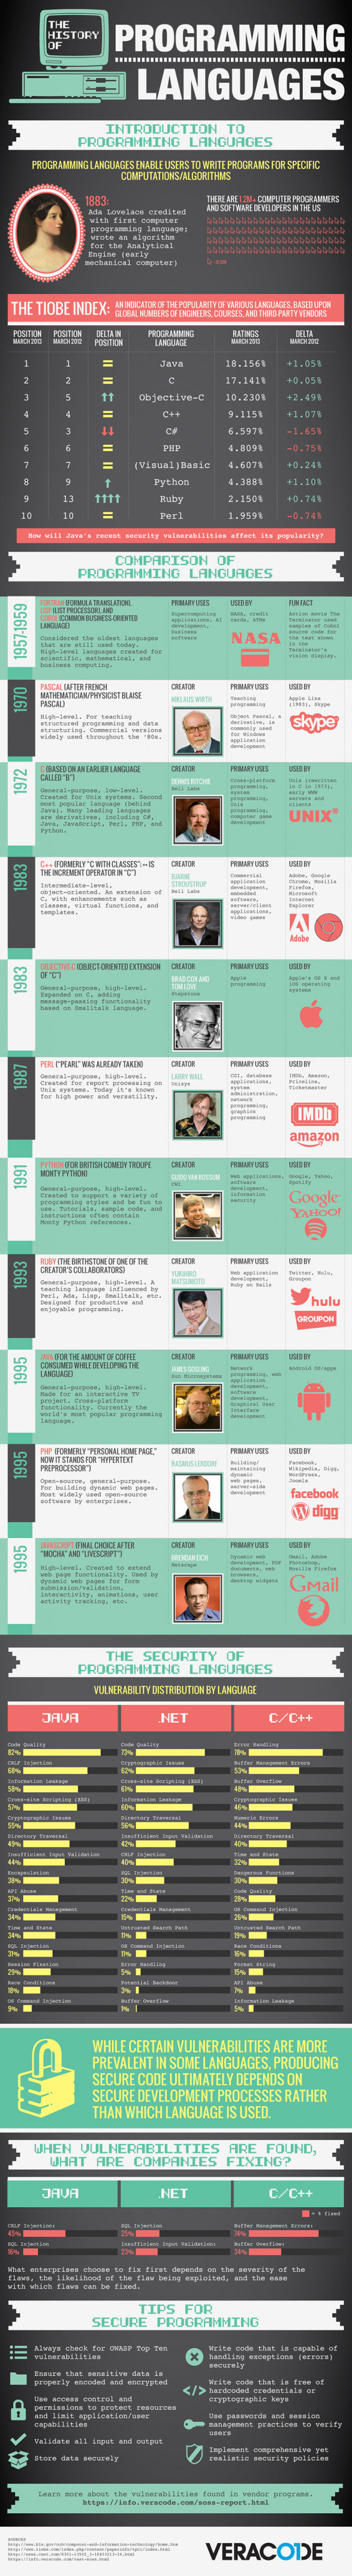 The History of Programming Languages